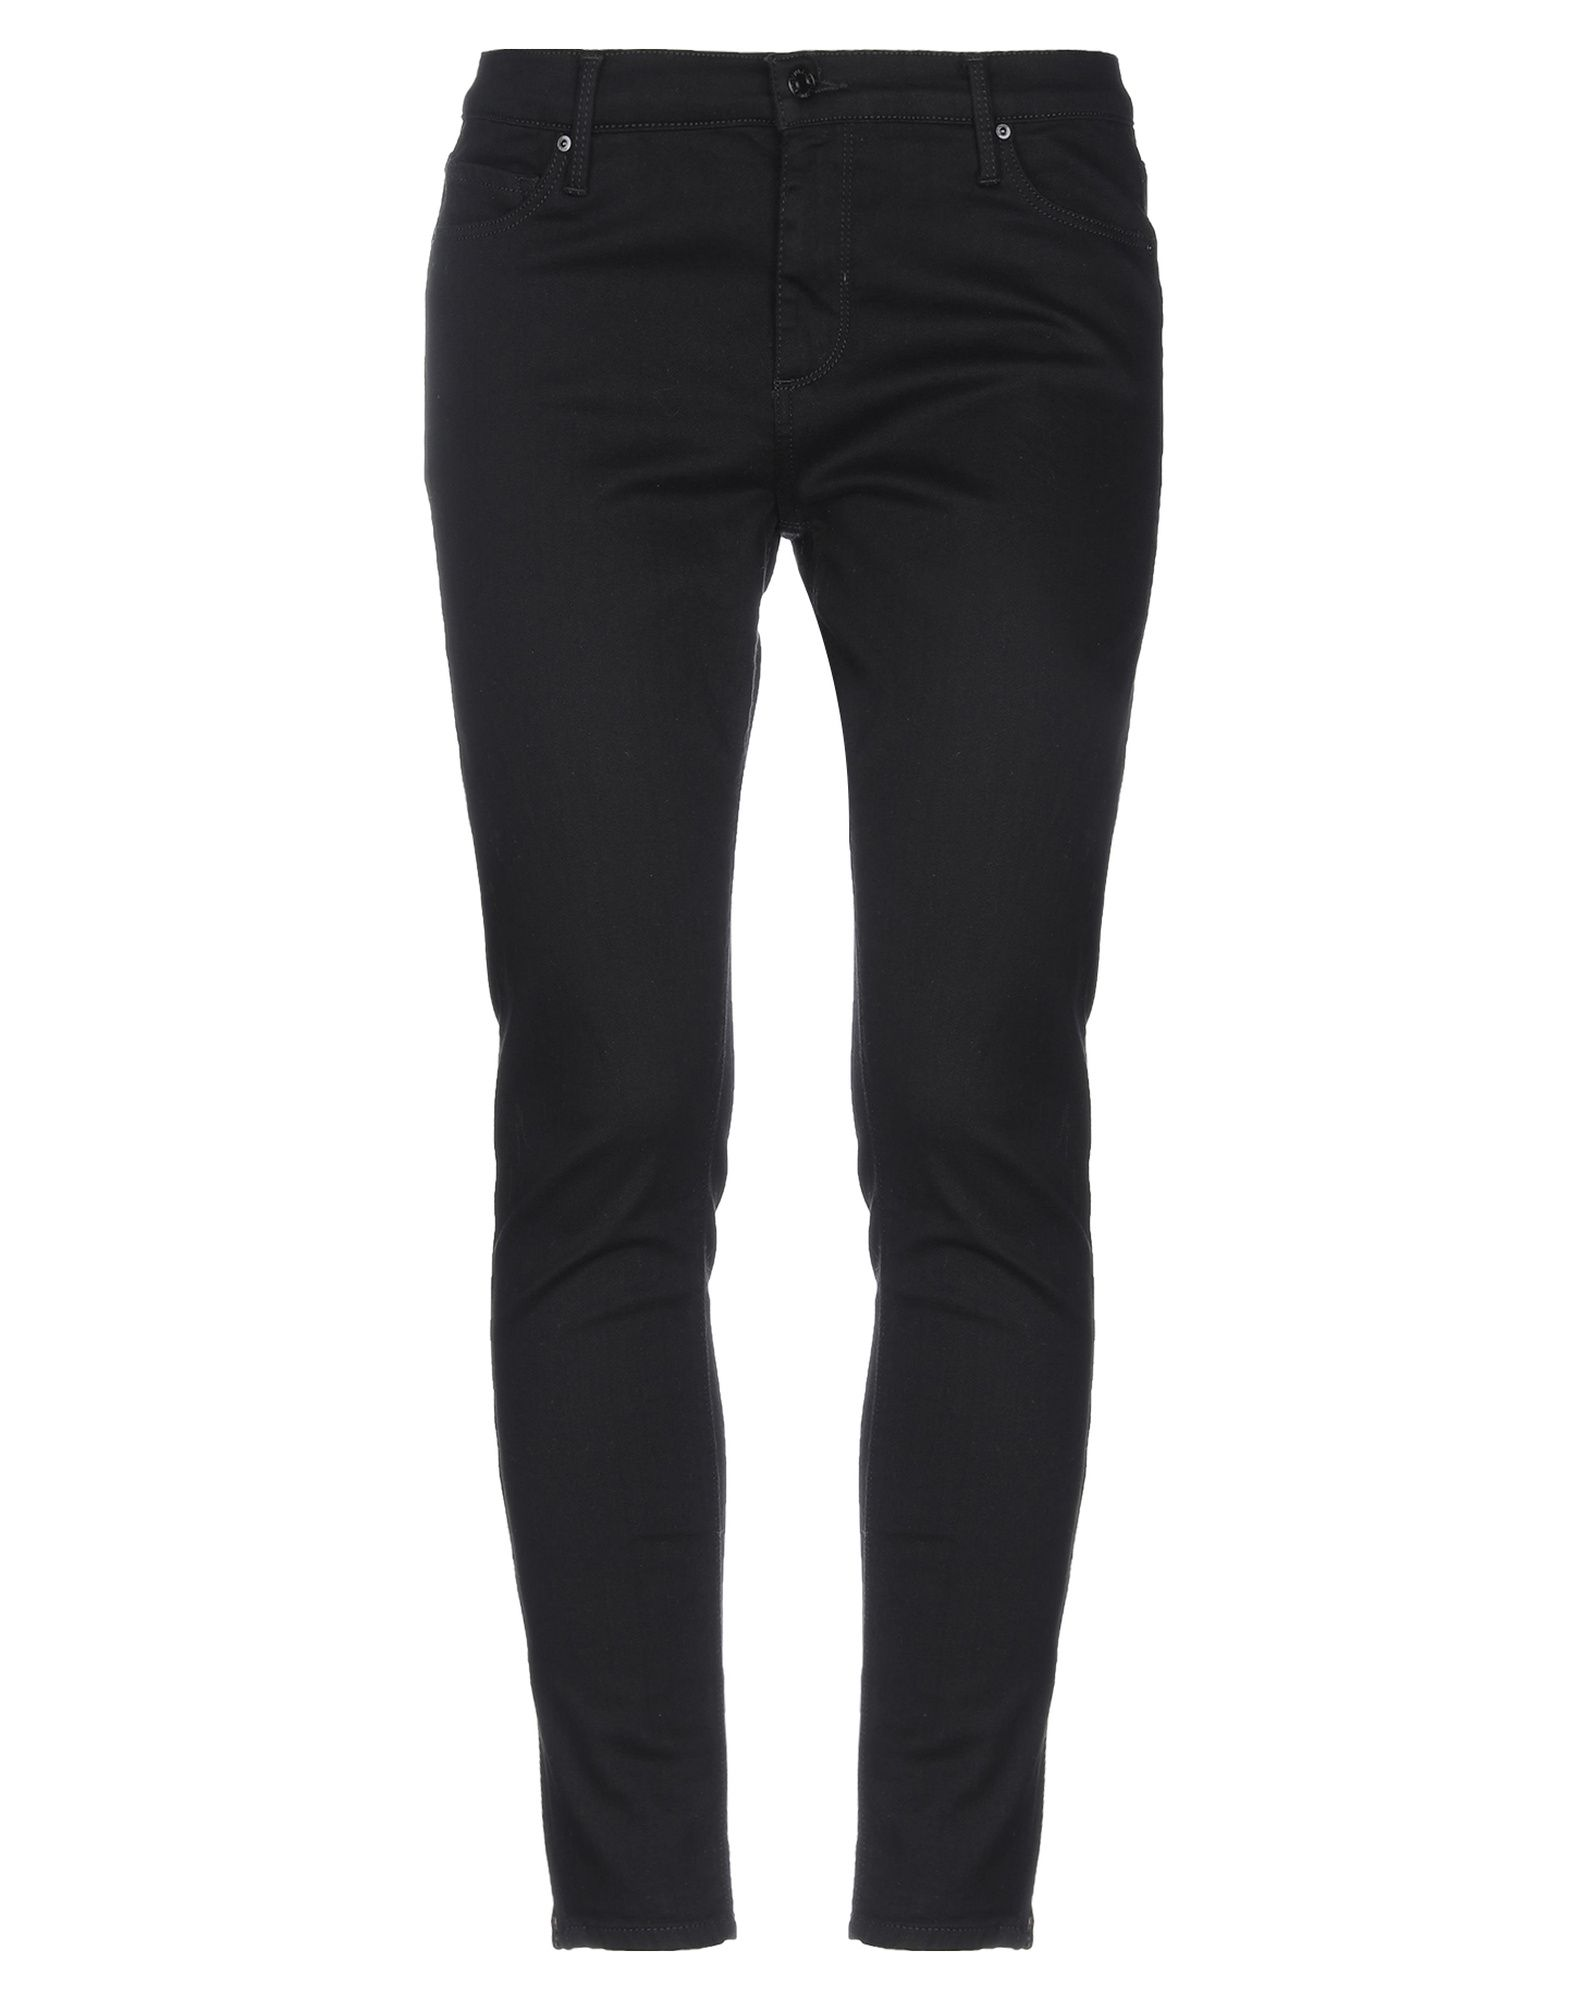 TOM FORD | BLACK ORCHID Denim Pants 42732441 | Goxip